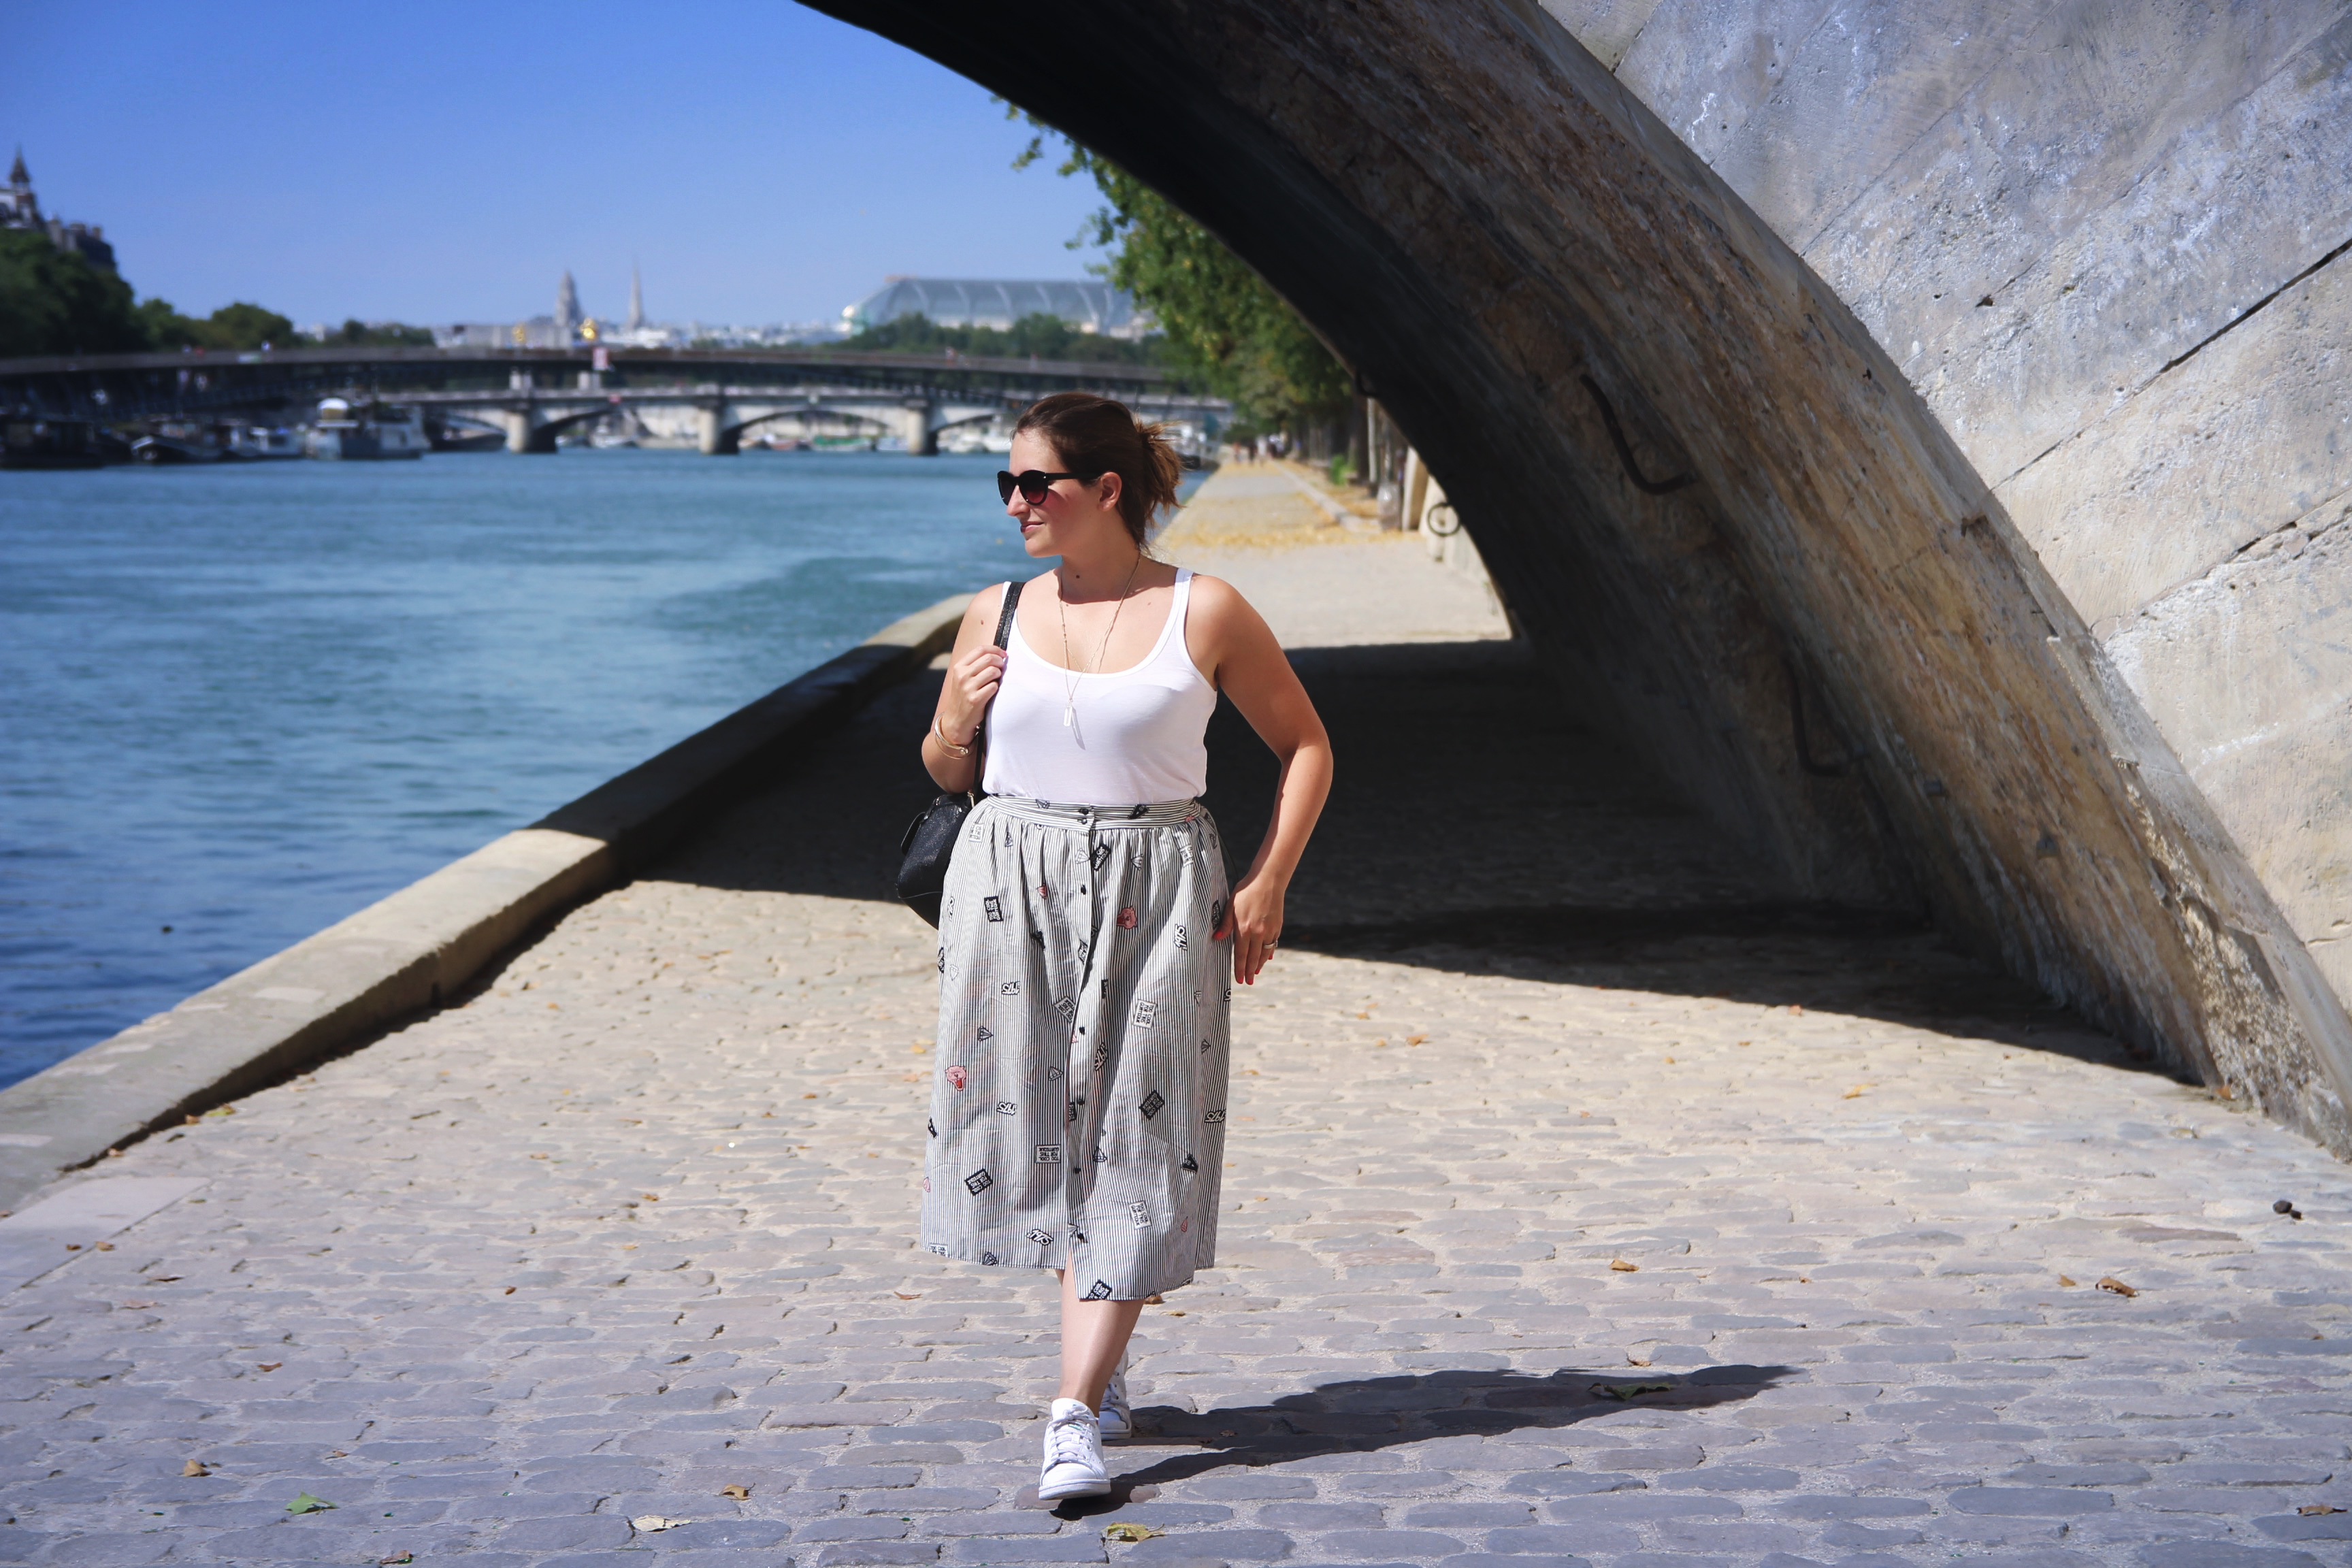 lookbook-oldschool-strip-skirt-fahionblogger-influencer-seralynepointcom-paris-bergesdeseine-4073